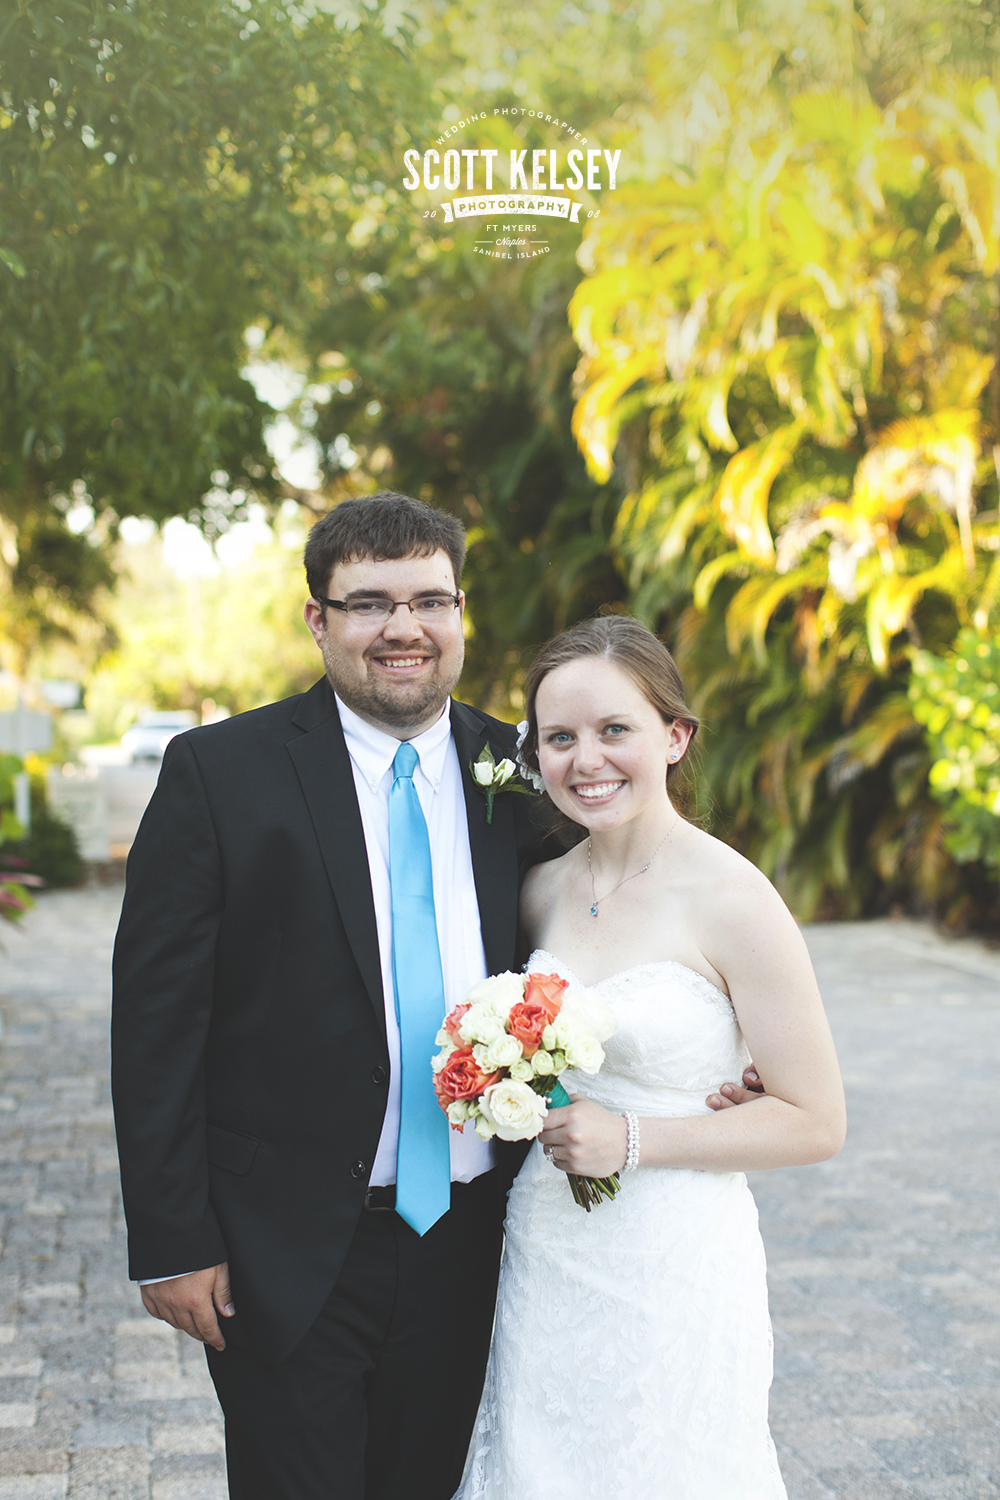 scott-kelsey-wedding-sanibel-island-inn-0012